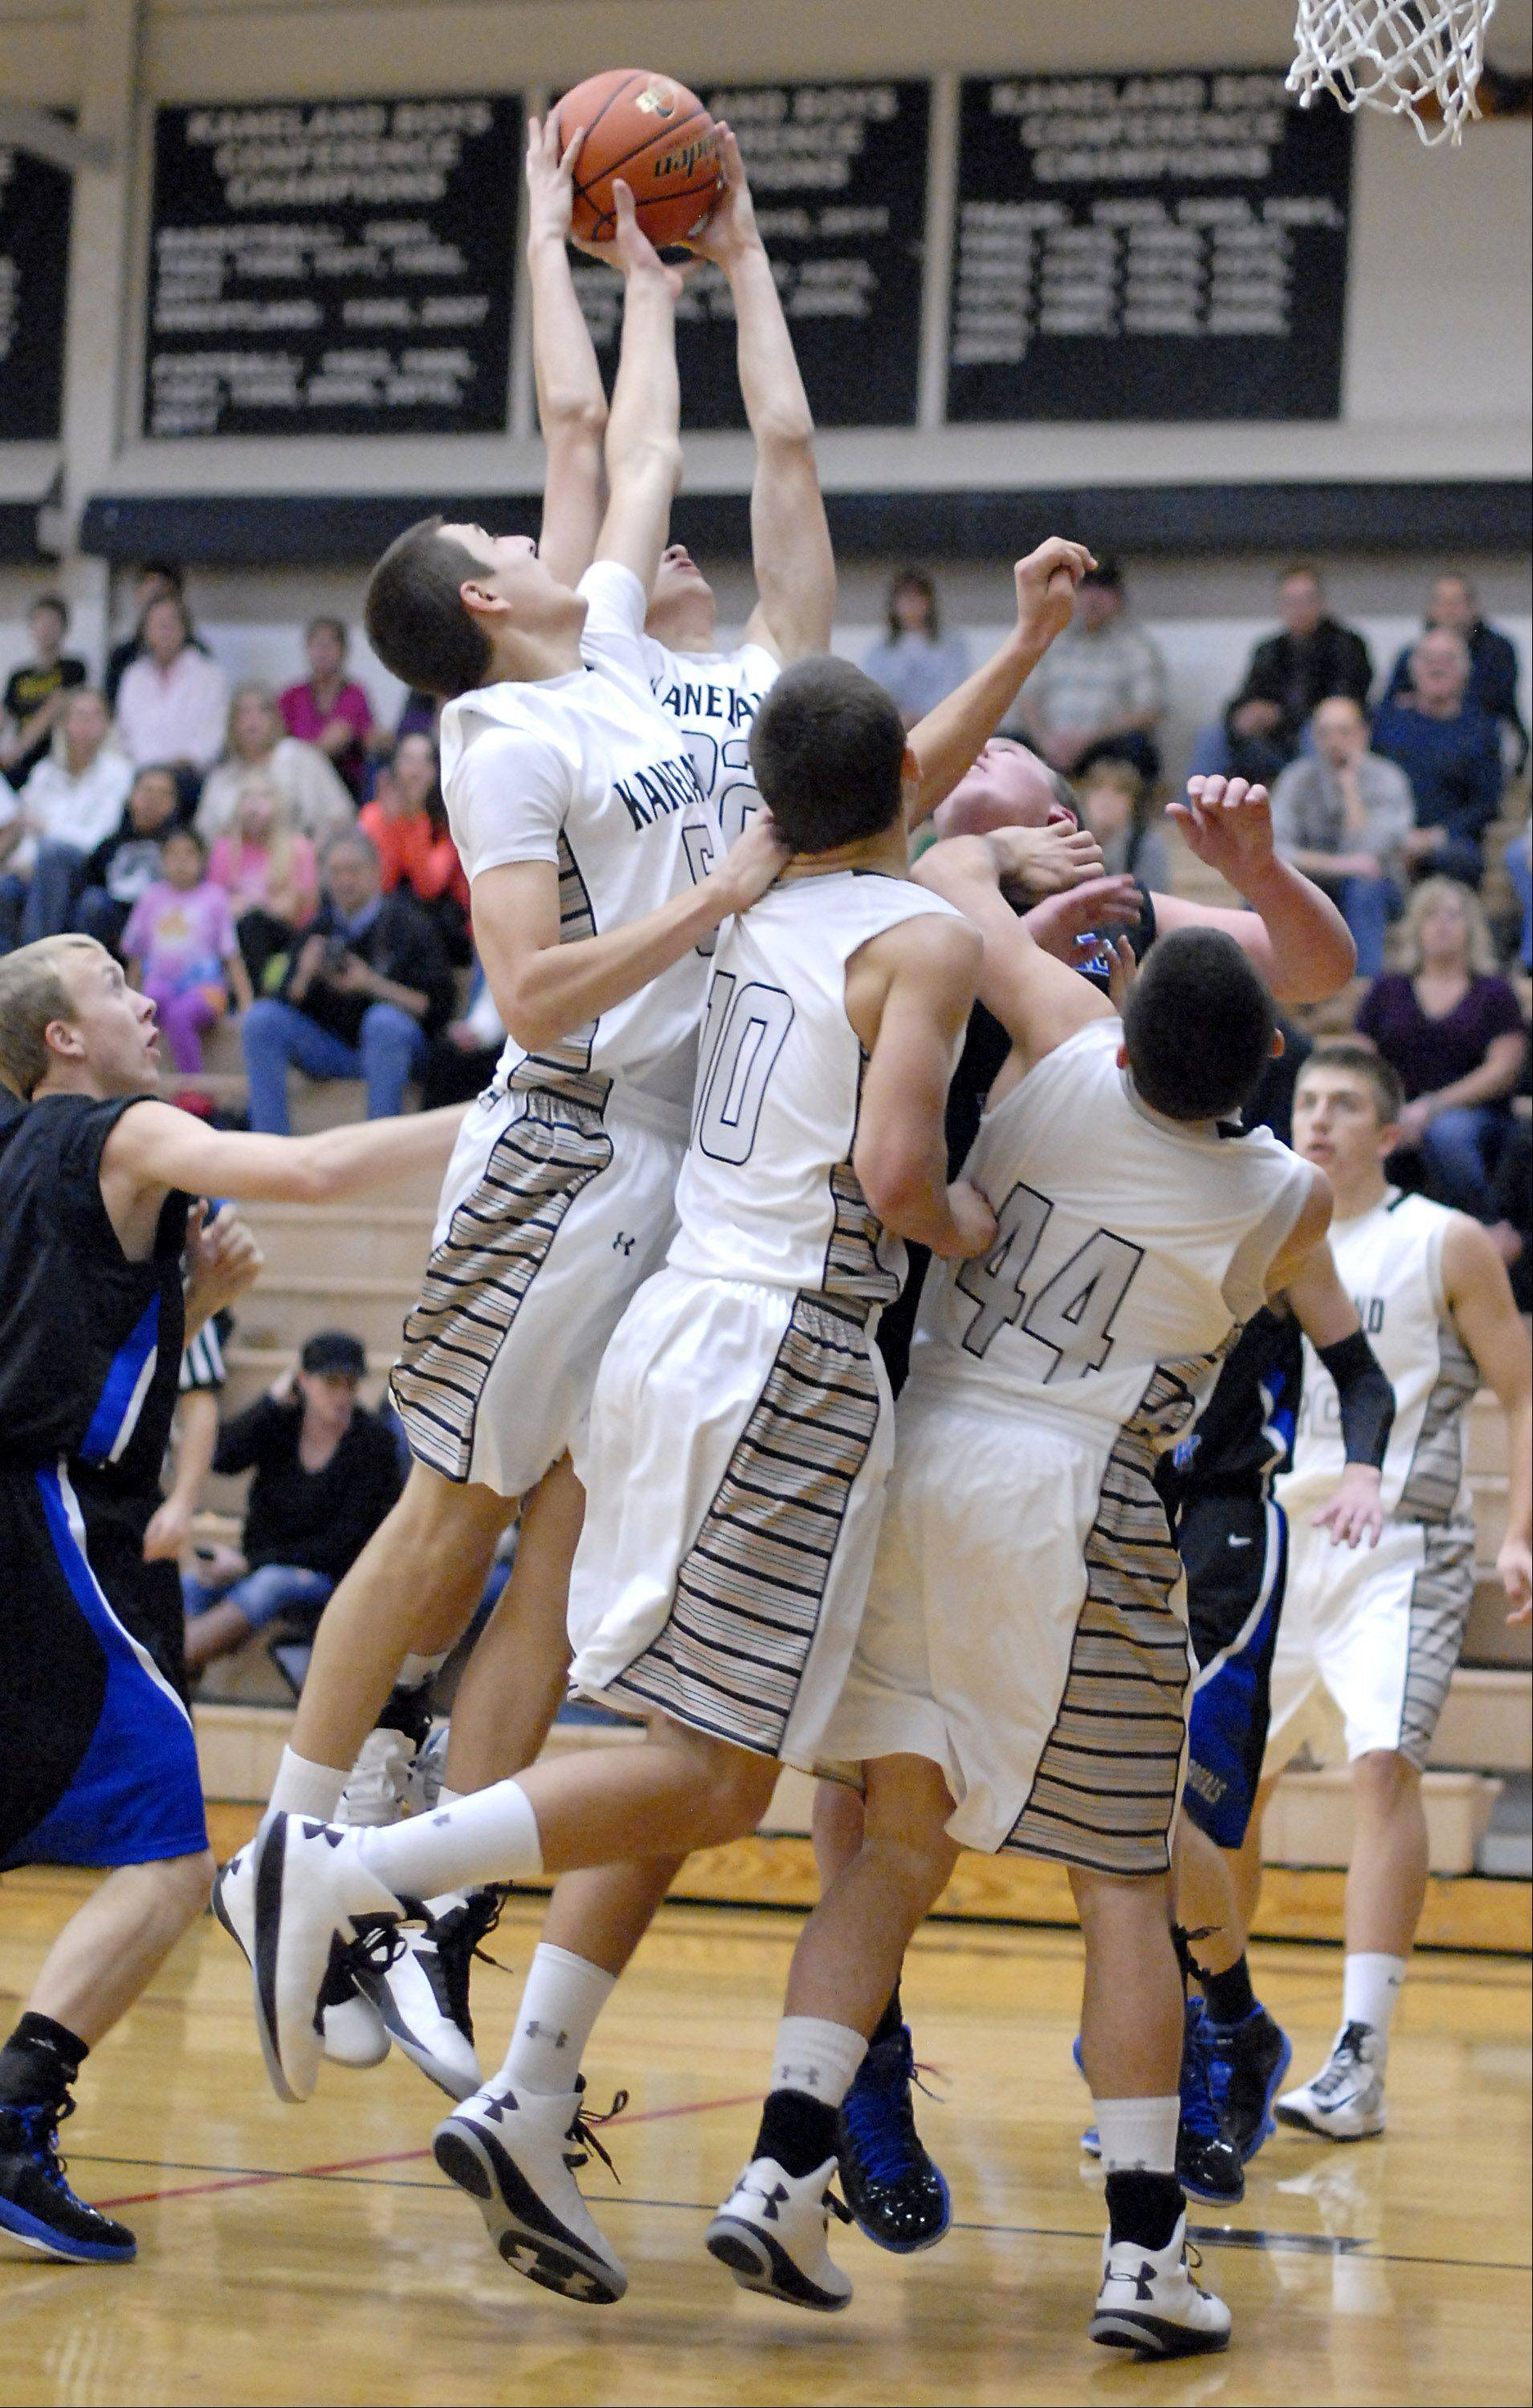 Kaneland claws back to edge Hinckley-Big Rock